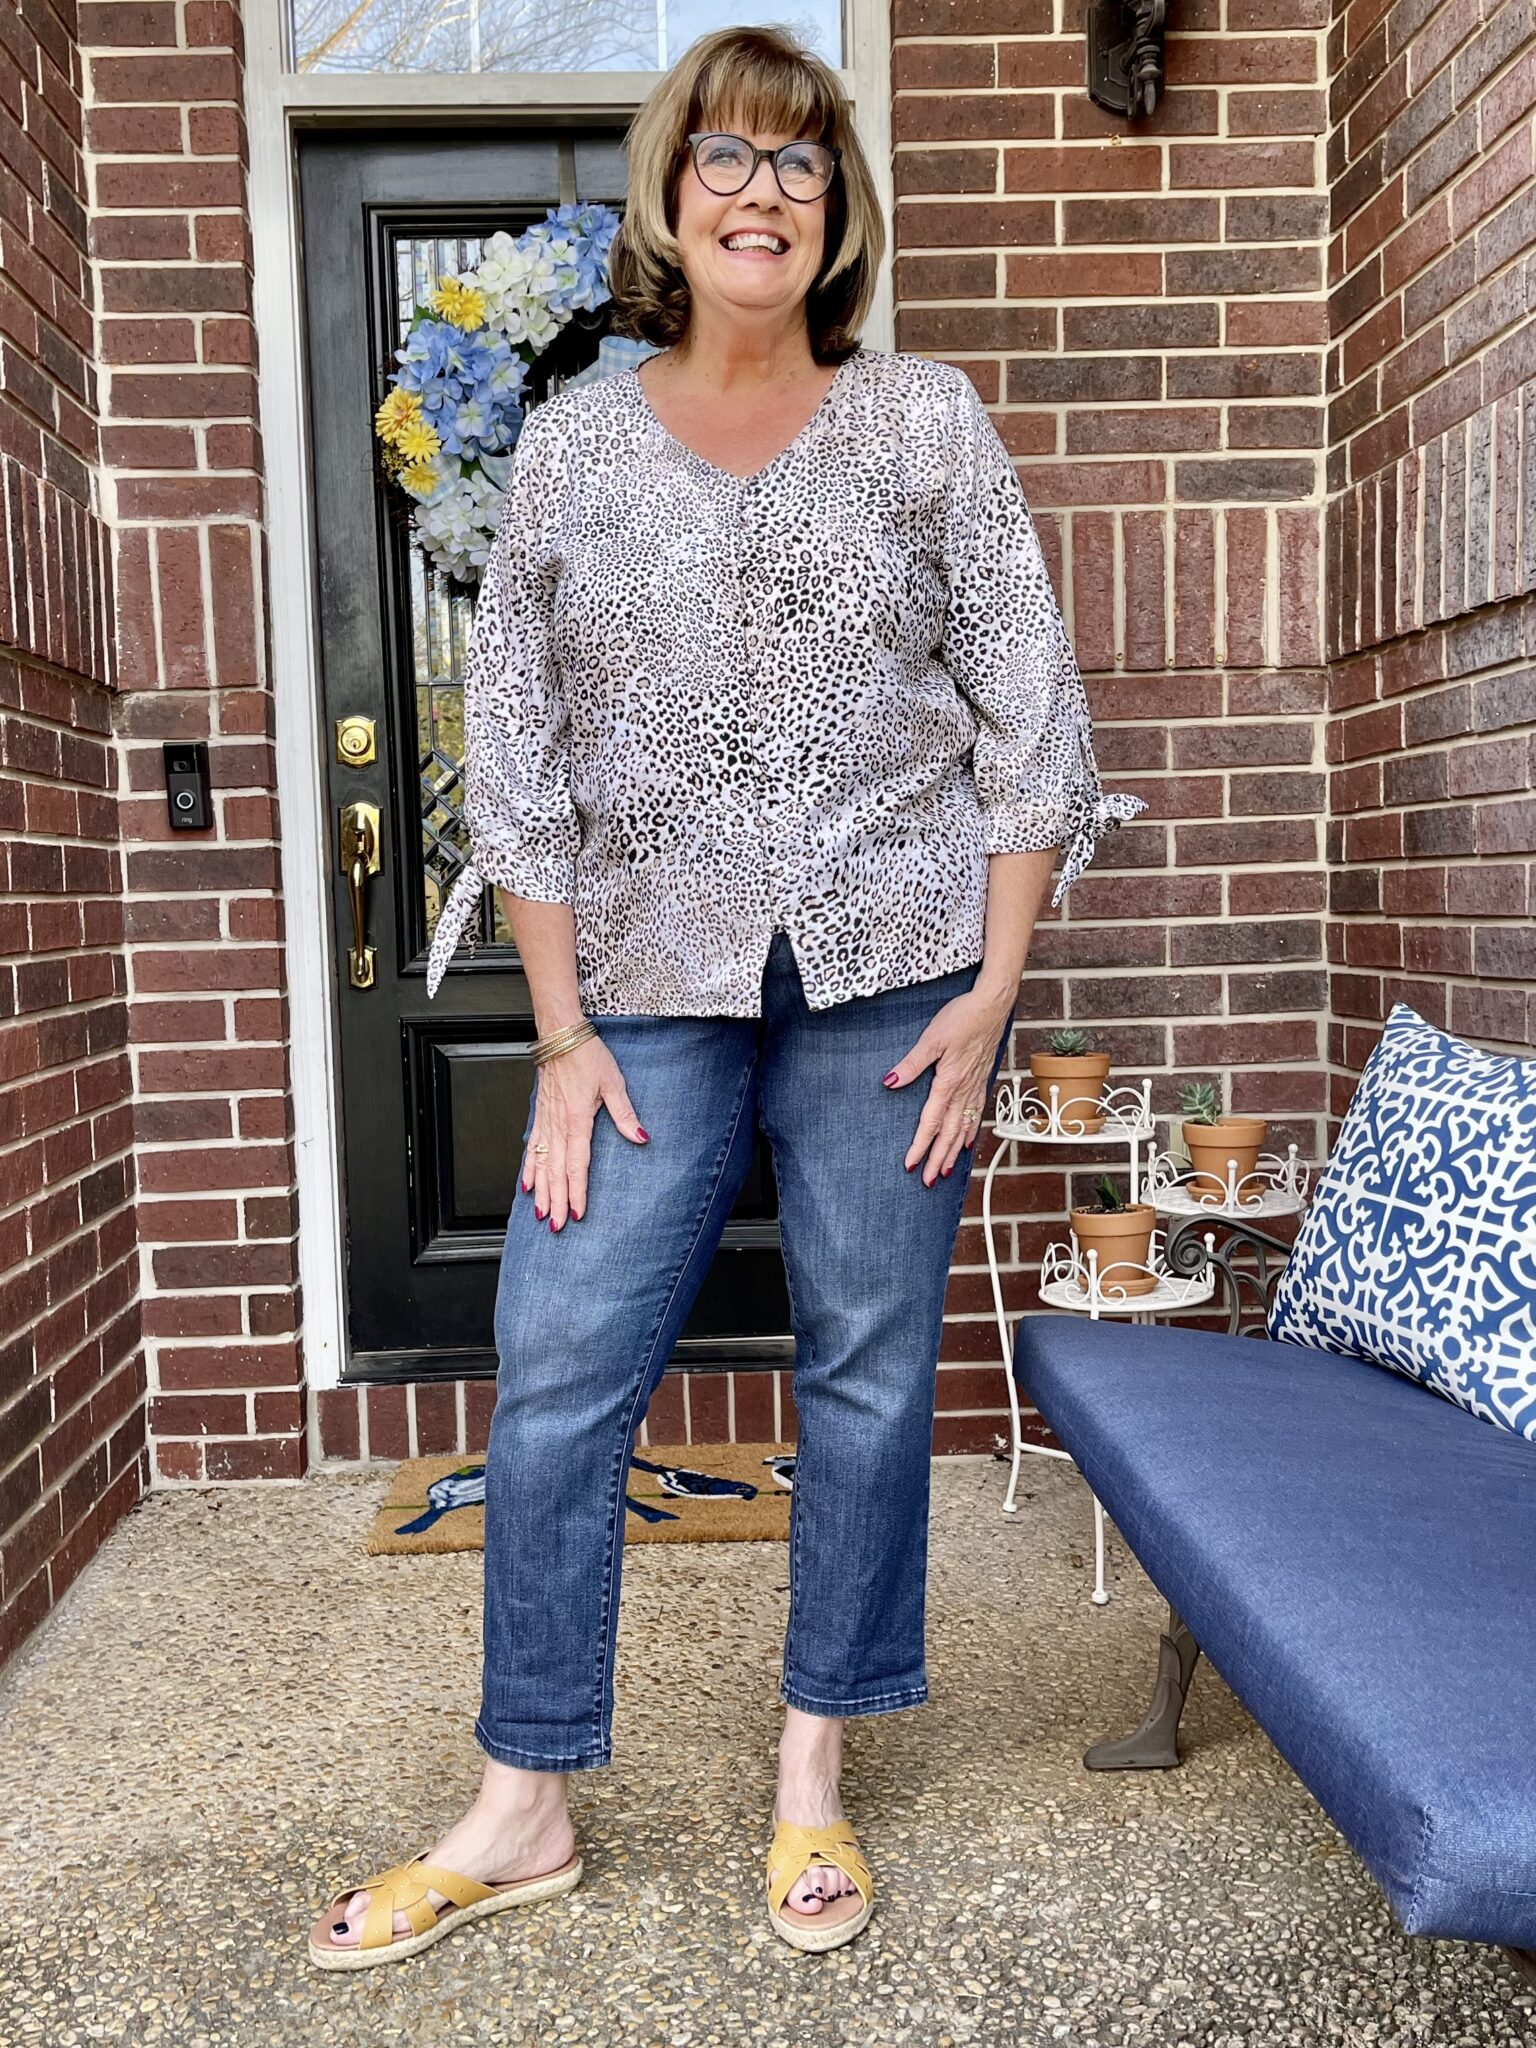 One little change to casual, at home style makes a huge difference